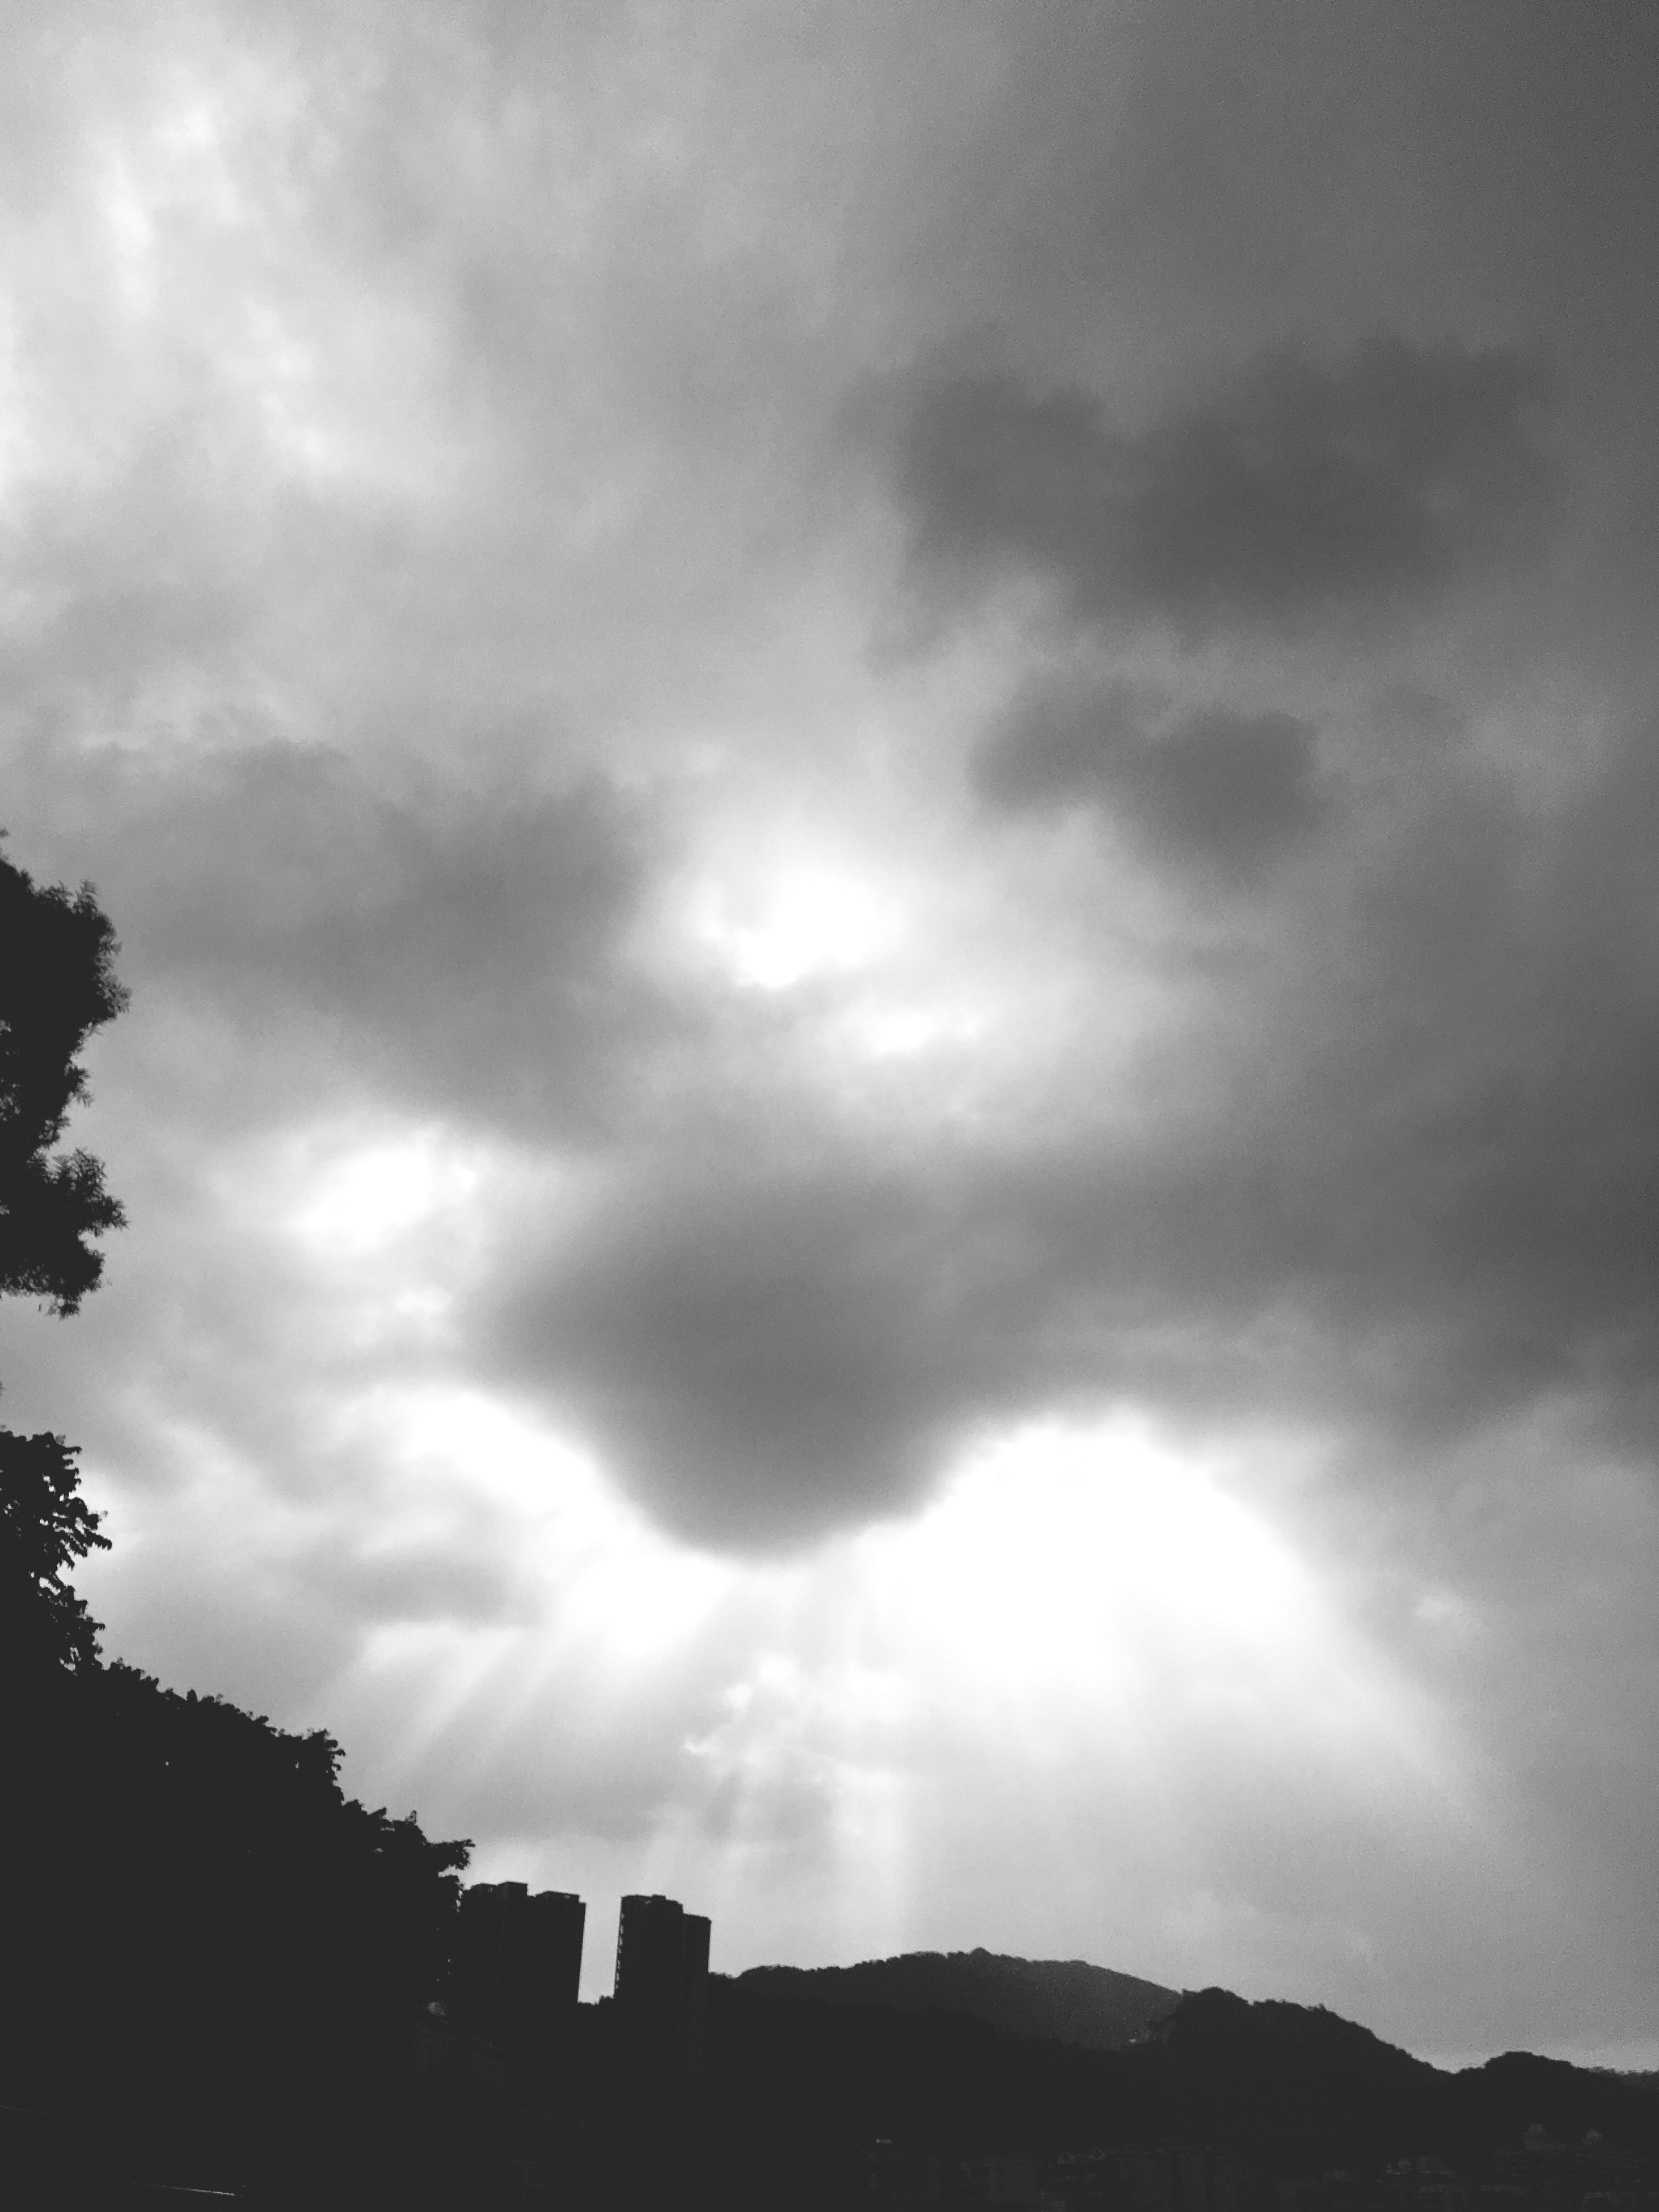 sky, cloud - sky, cloudy, low angle view, architecture, built structure, building exterior, weather, overcast, silhouette, storm cloud, cloud, nature, cloudscape, dusk, outdoors, beauty in nature, no people, building, day